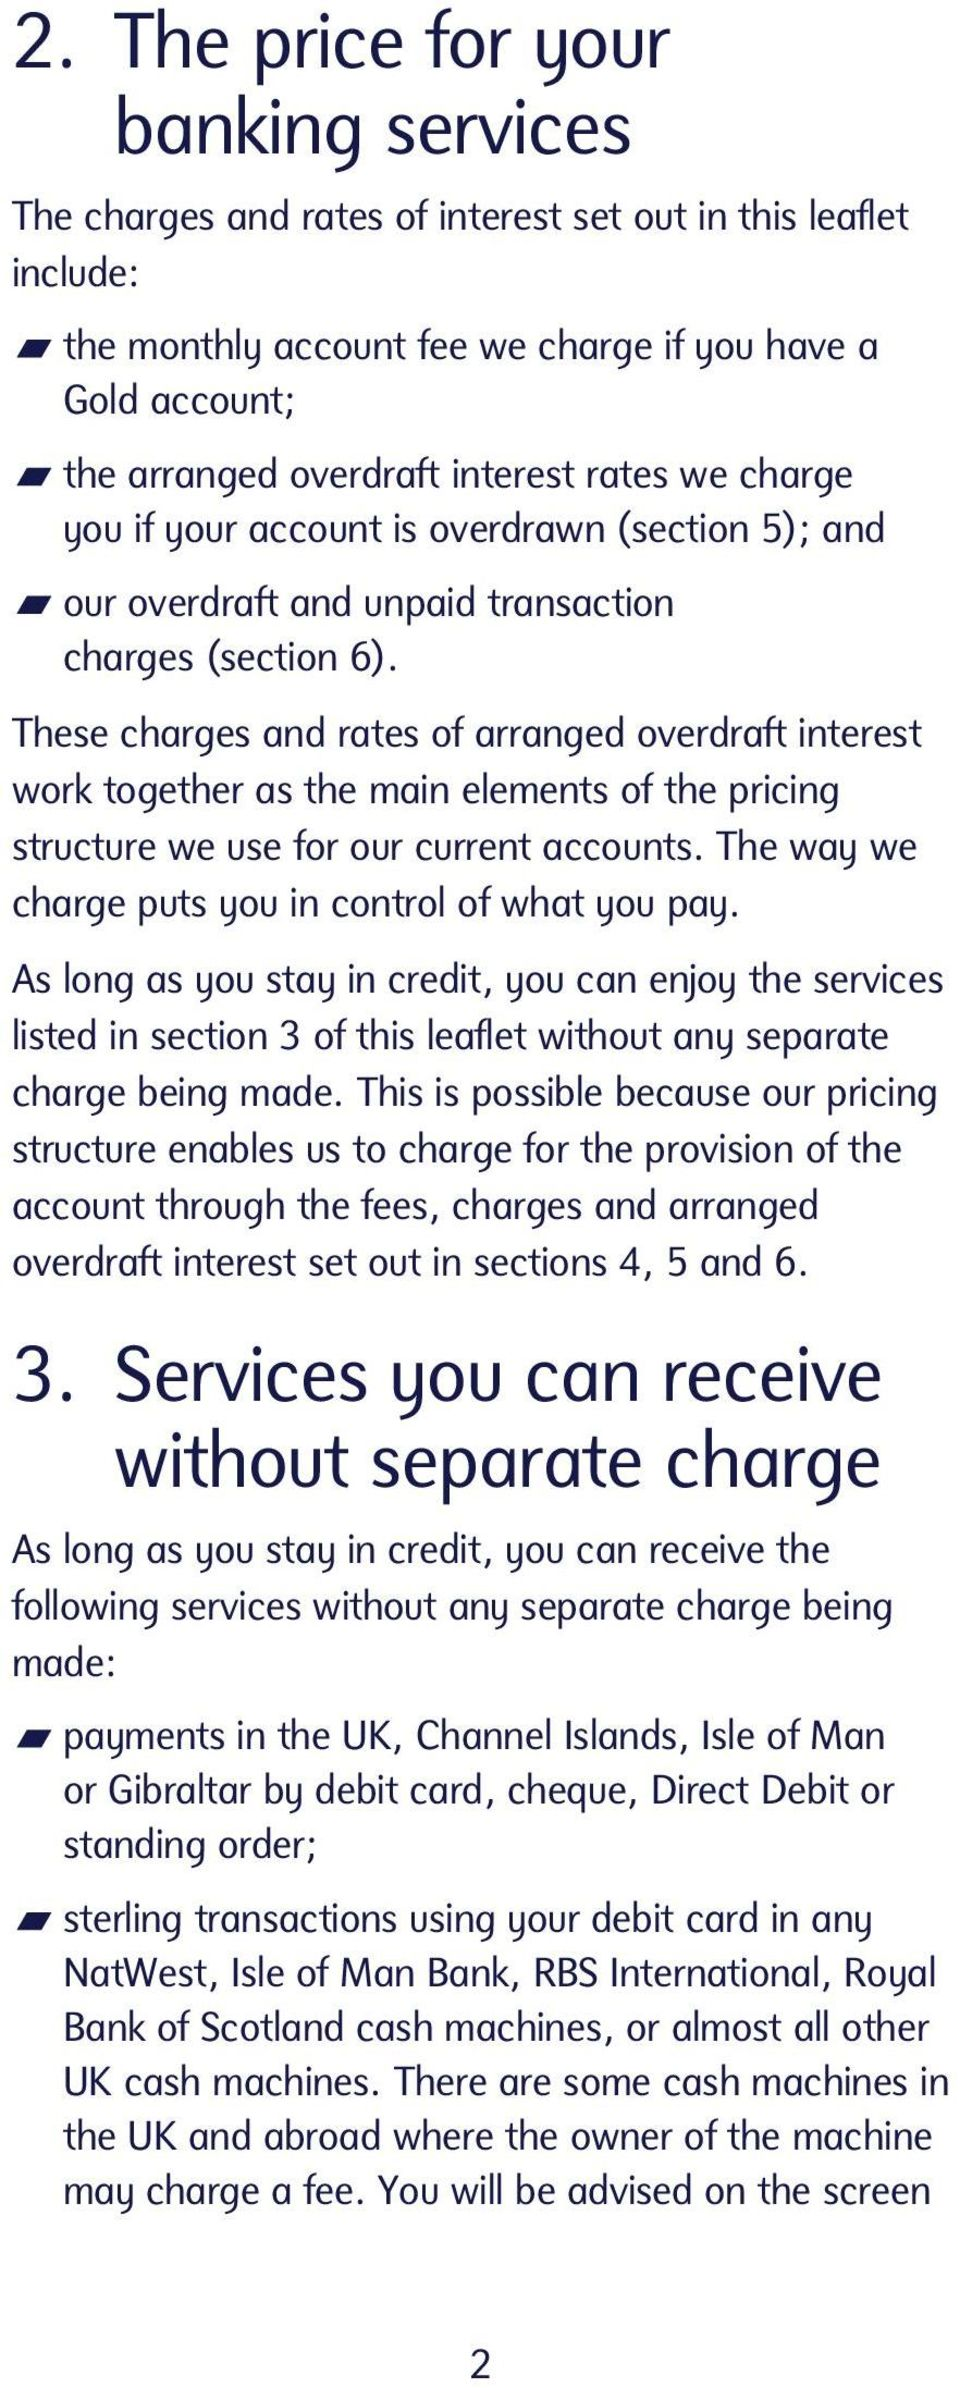 These charges and rates of arranged overdraft interest work together as the main elements of the pricing structure we use for our current accounts.